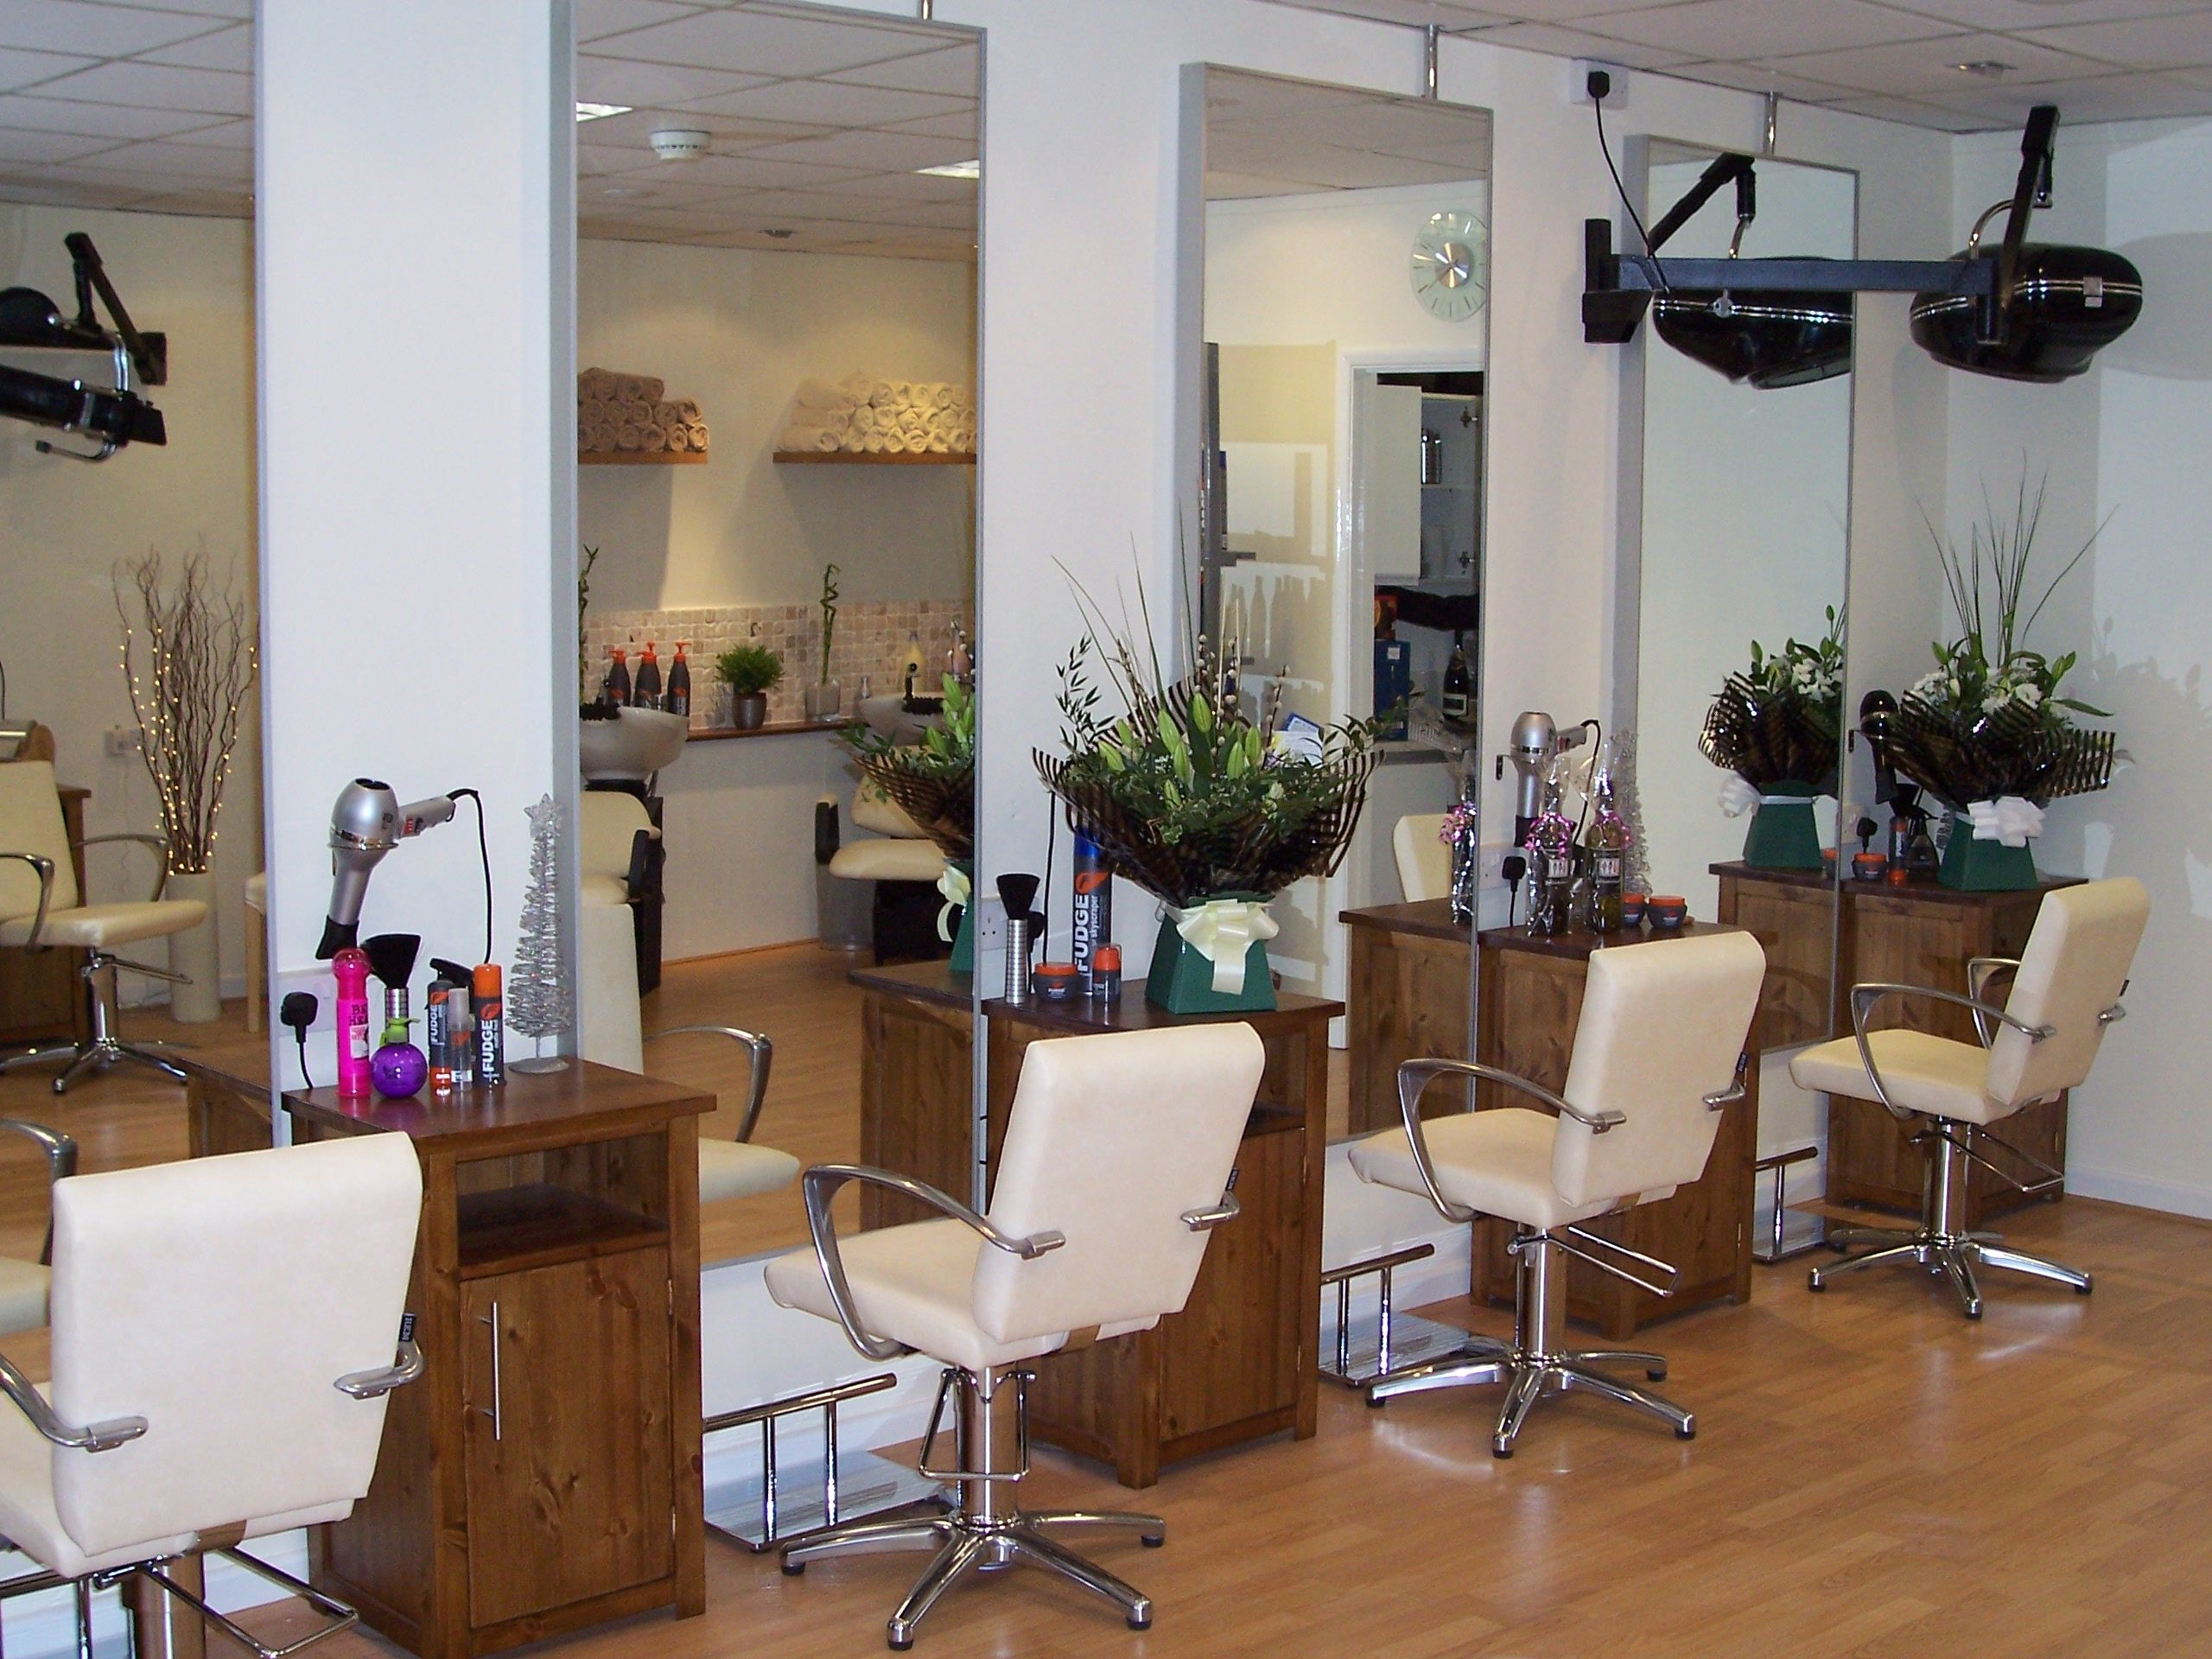 Beauty Salon Design Ideas small beauty salon interior design bing images Small Salon Design Unique Hair Design Enter Your Caption Here Salon Design Ideas Beauty